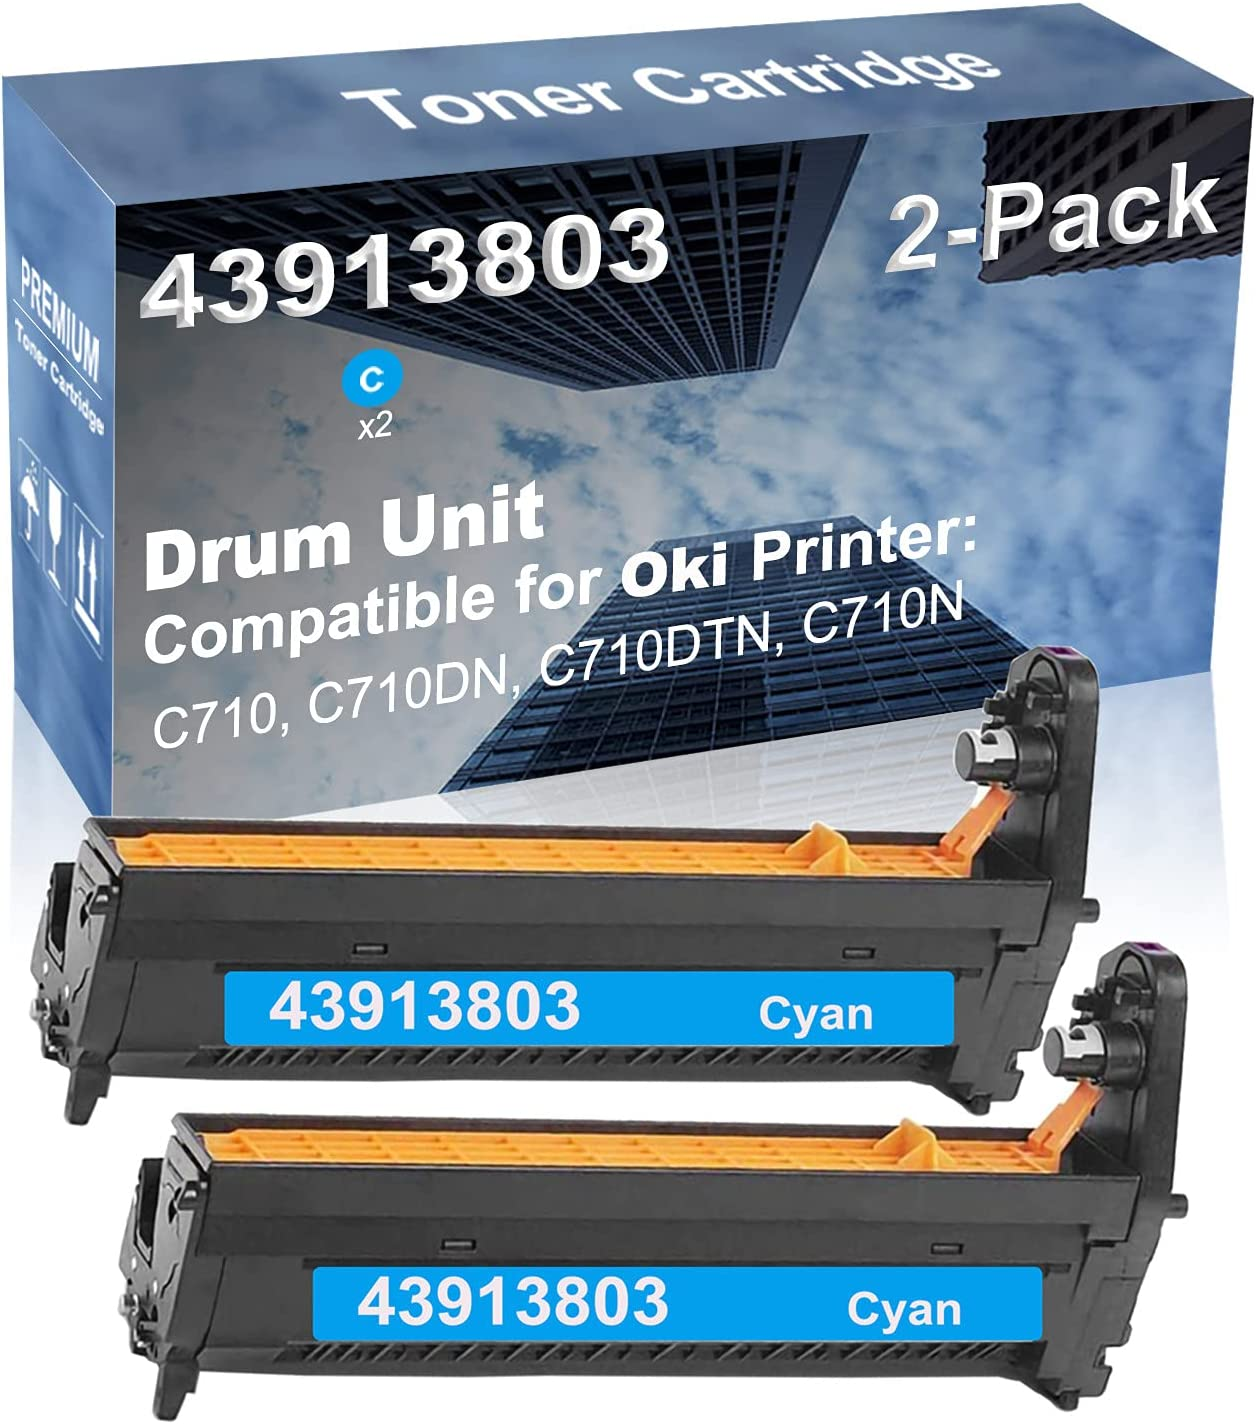 2-Pack (Cyan) Compatible High Yield 43913803 Drum Unit Used for Oki C710, C710DN, C710DTN, C710NDW Printer